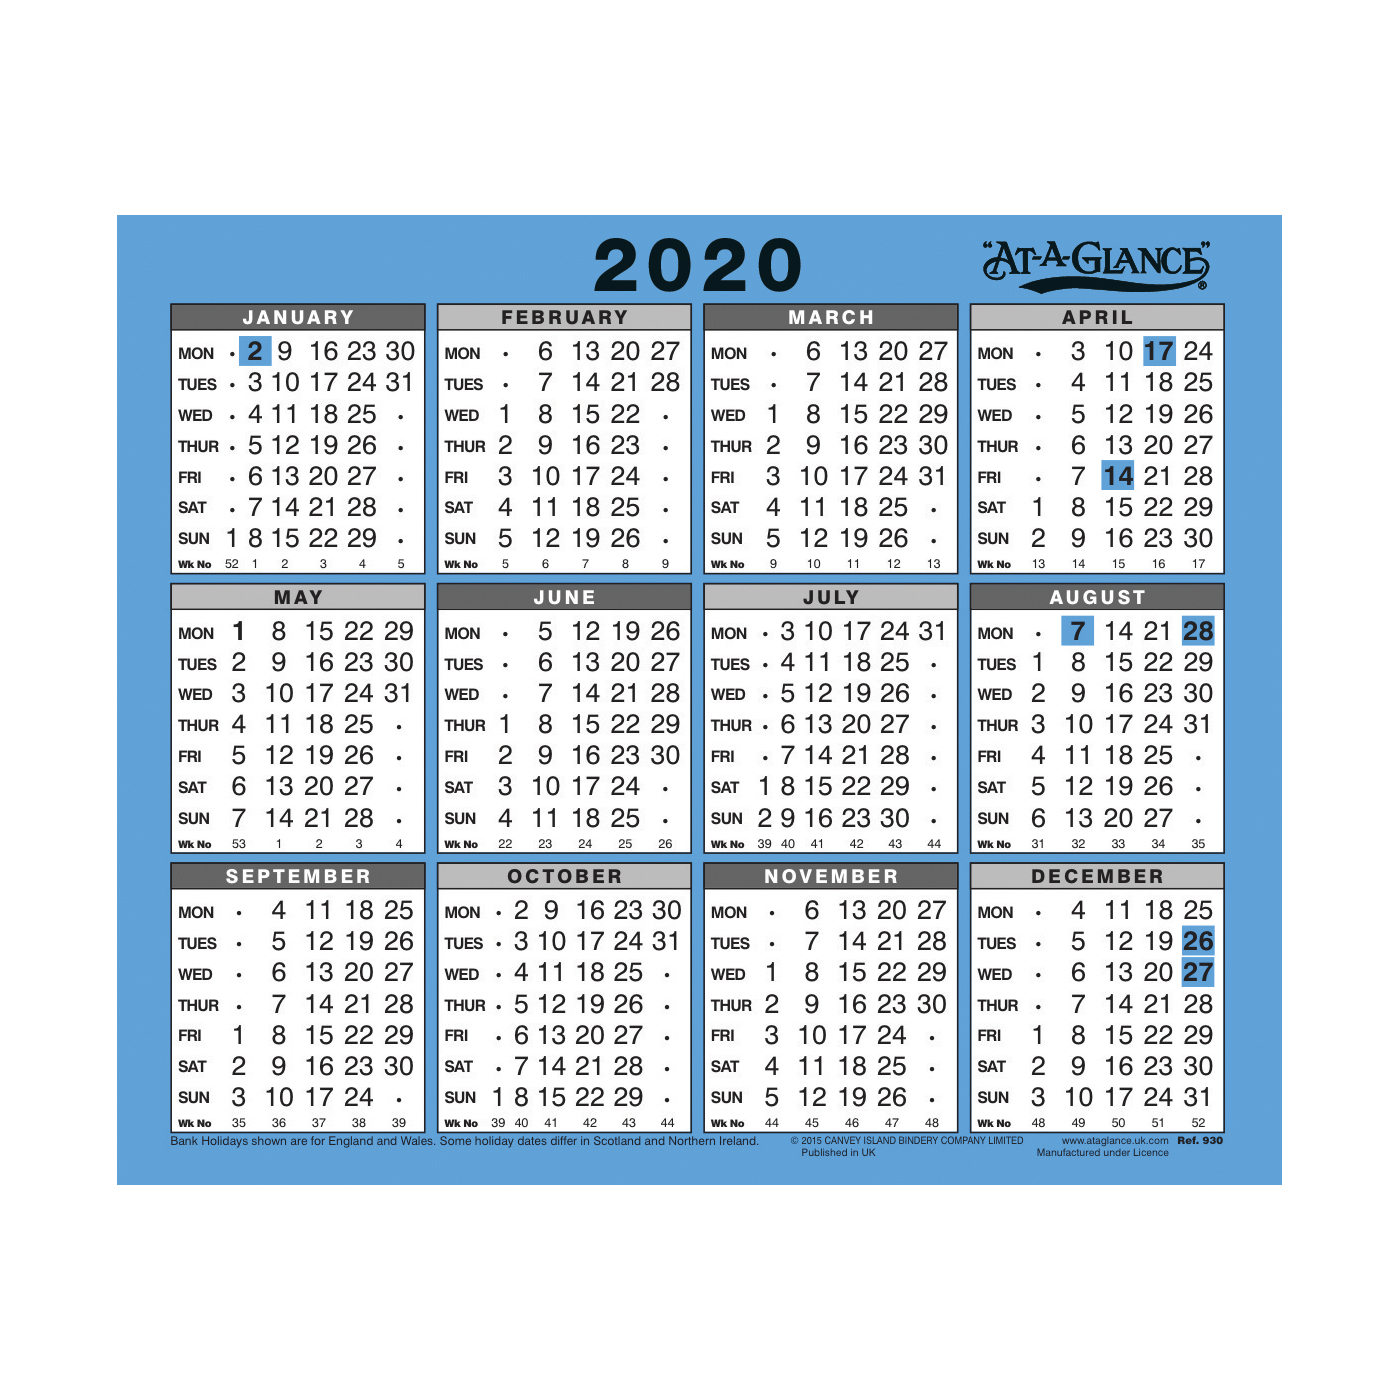 Calendars At-A-Glance 2020 Wall/Desk Calendar Year to View Gloss Board Binding 254x210mm White/Blue Ref 930 2020